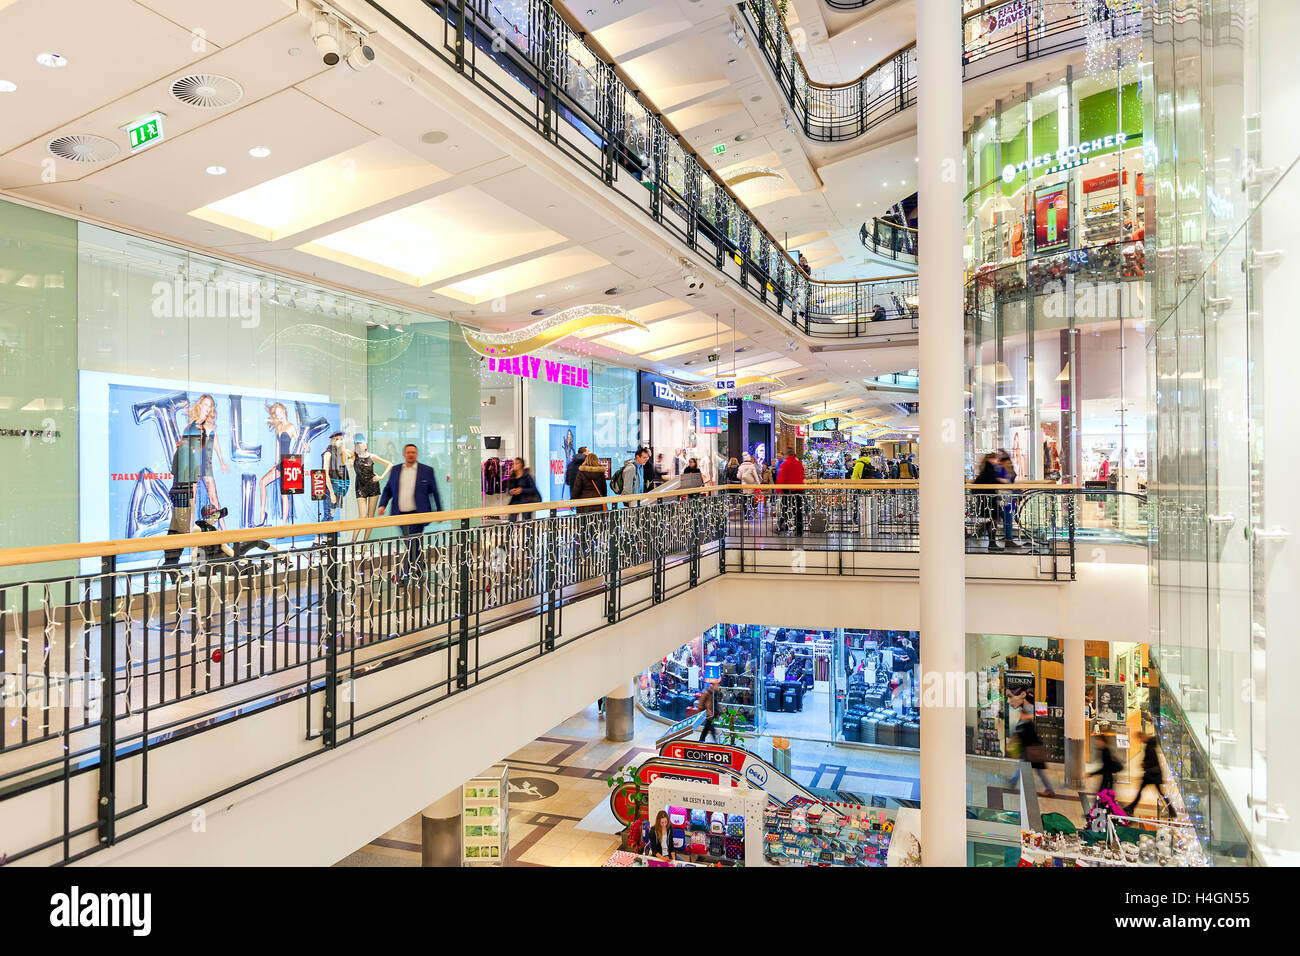 Interior view of Palladium shopping center decorated for Christmas holidays in Prague, Czech Republic. - Stock Image